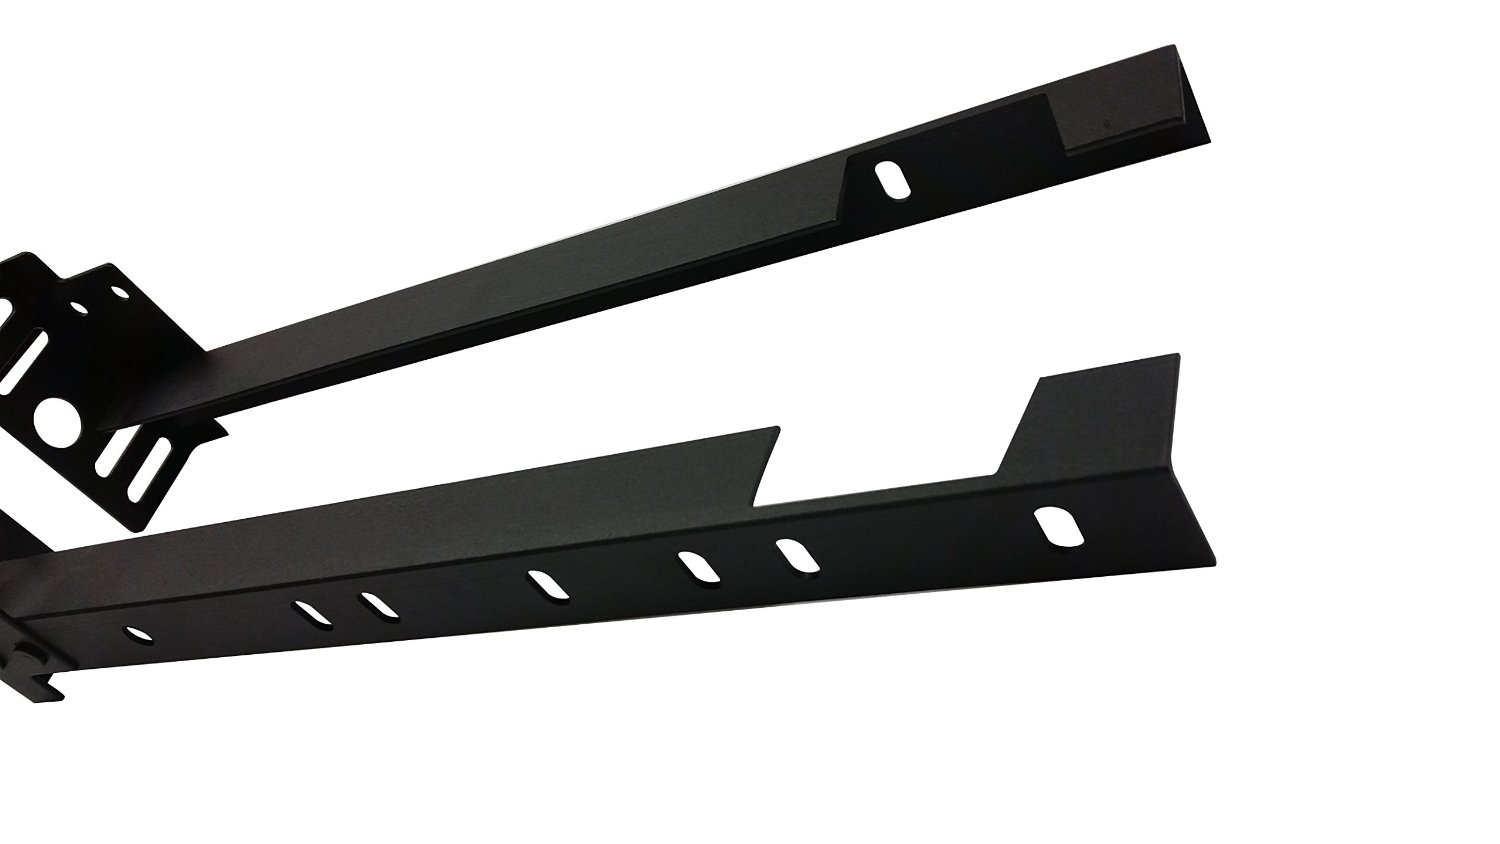 bed frame footboard extension brackets attachment kit set of 2